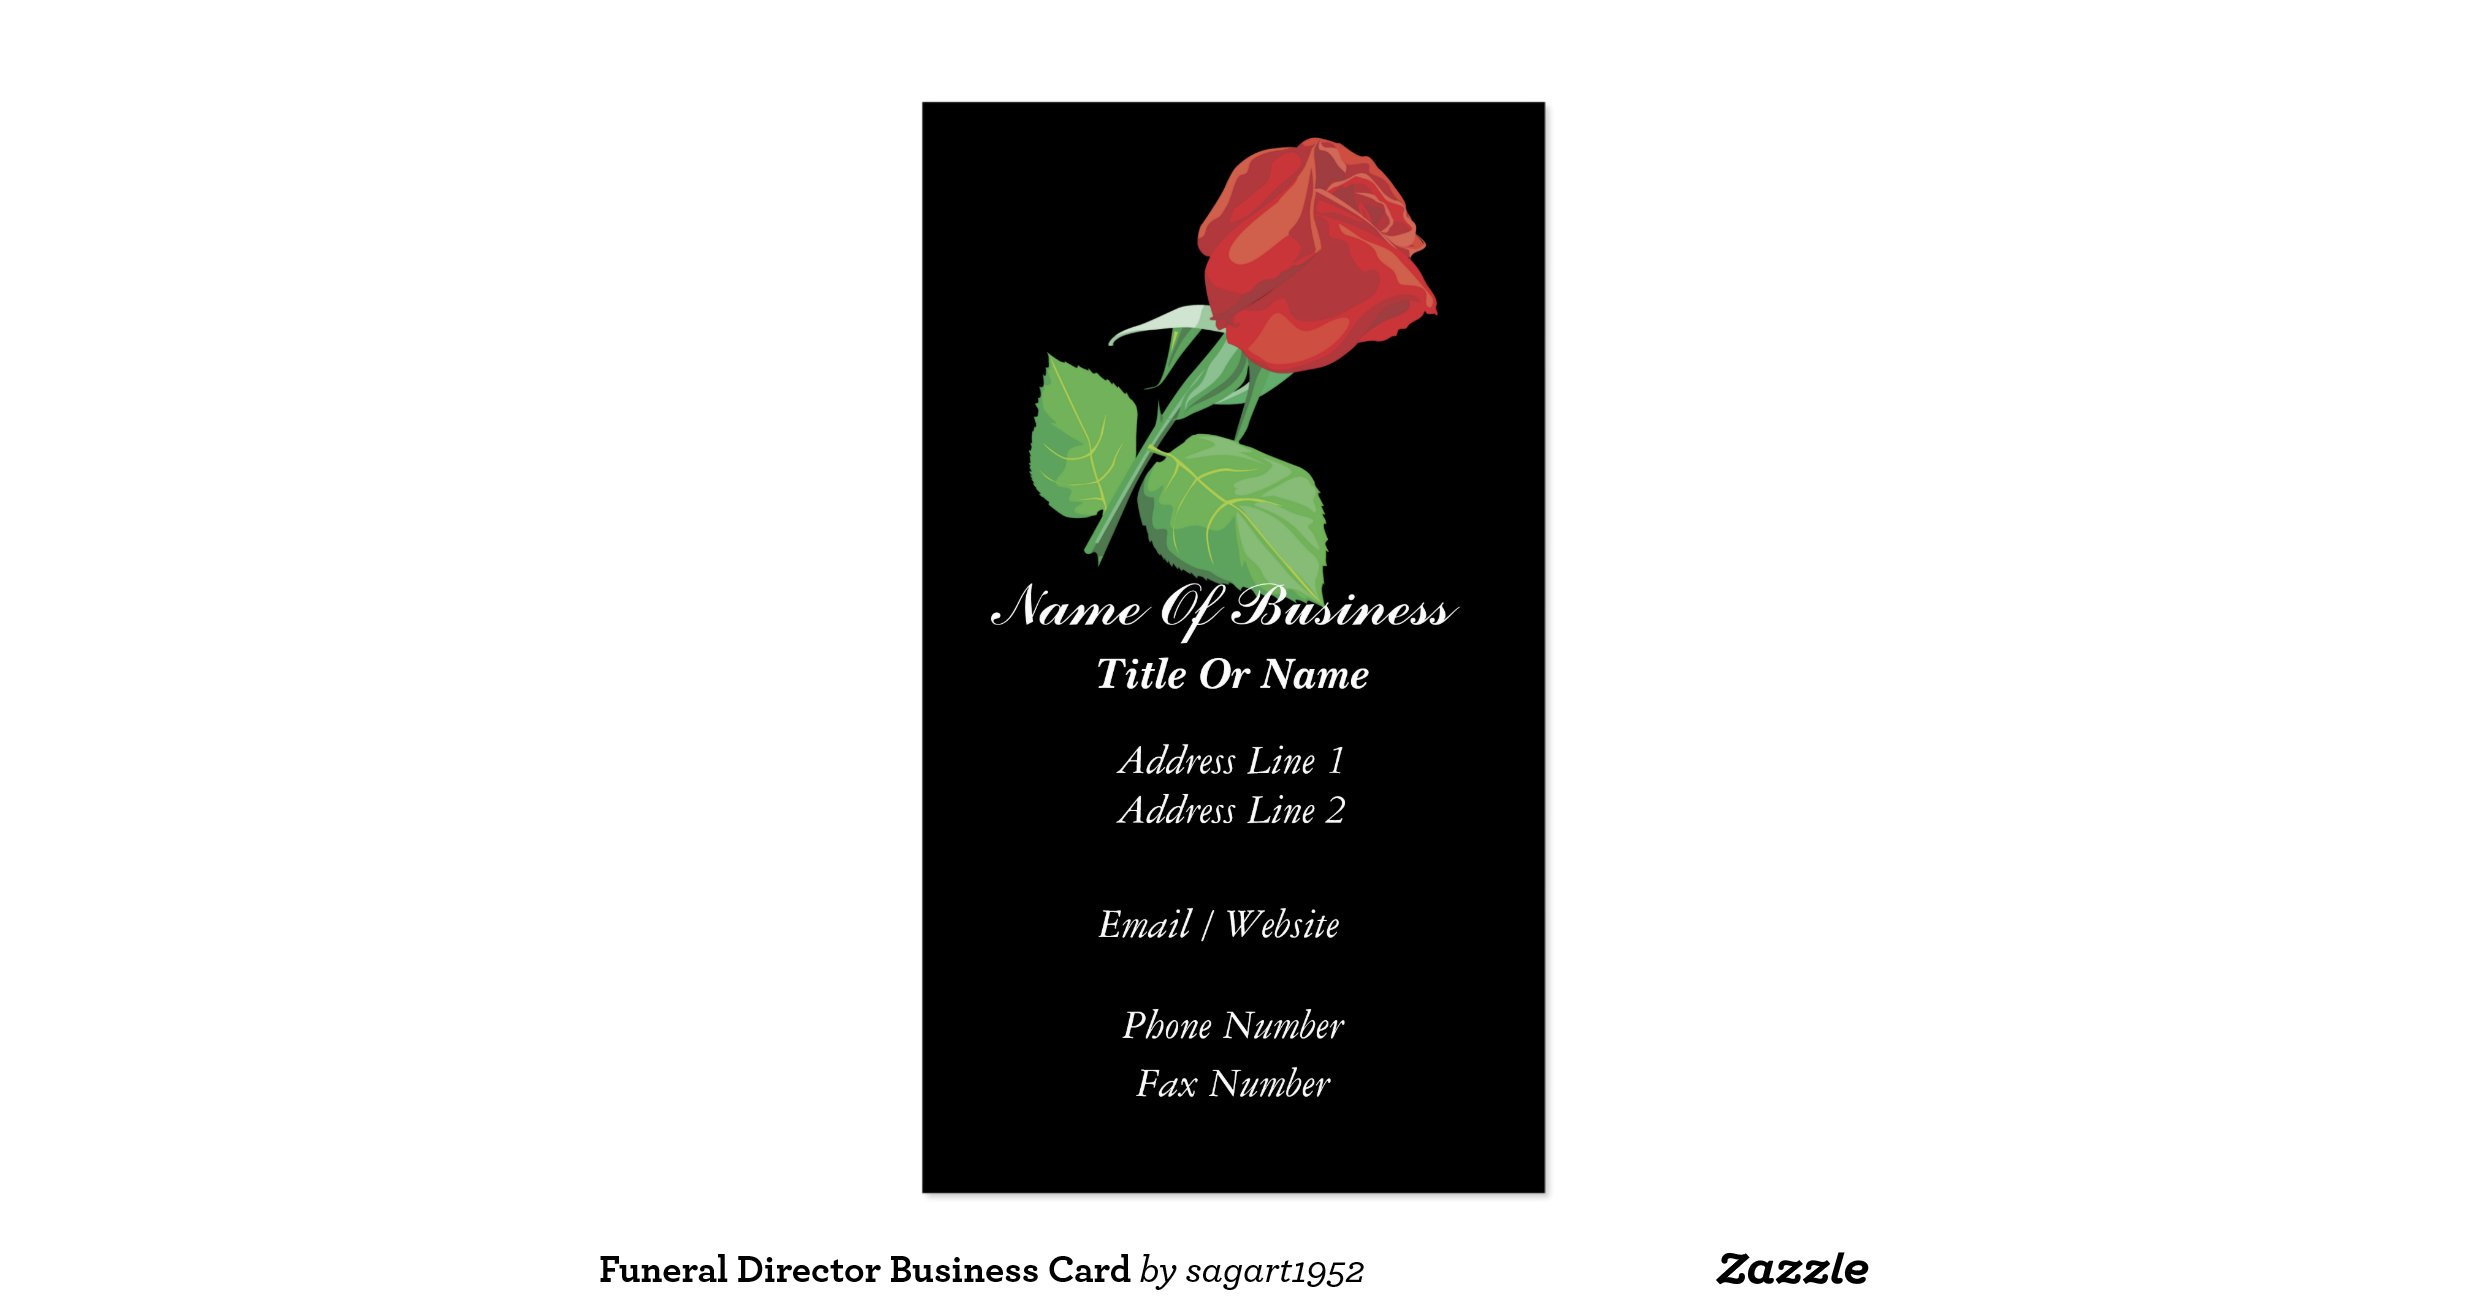 Funeral Director Business Card R4f7cfb8e59aa483a8d00b11bc22a3510 I579g 8byvr